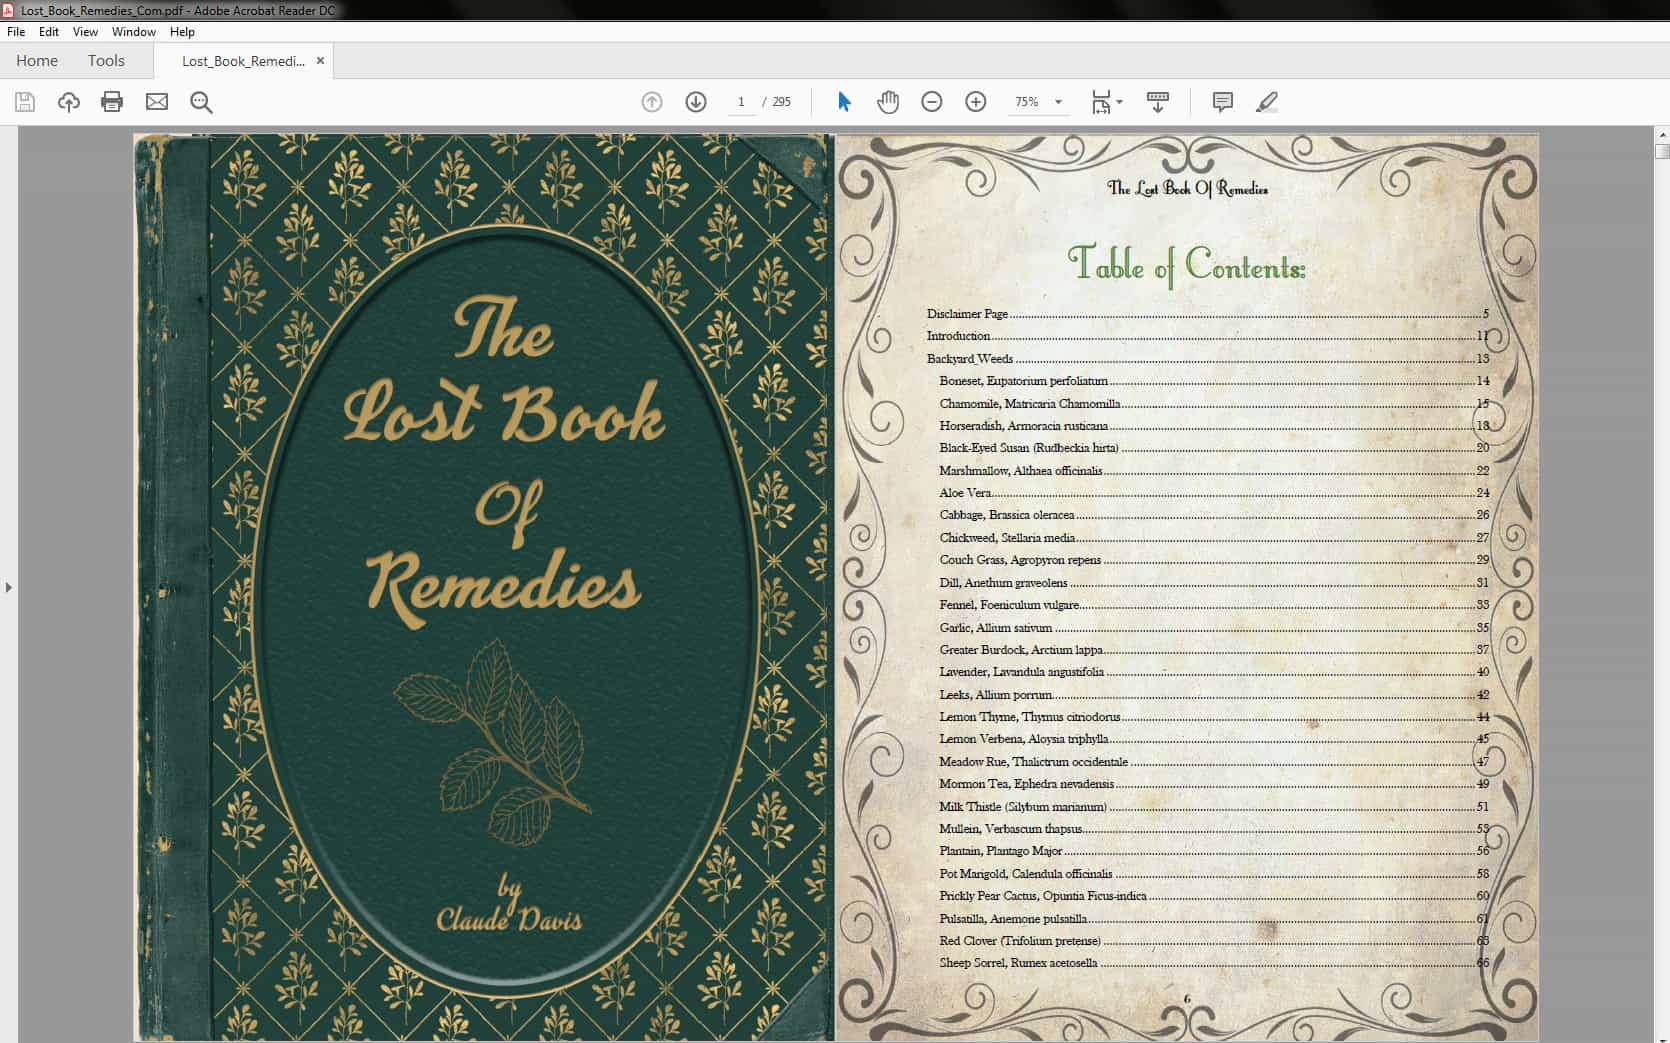 The Lost Book of Remedies - Table of Contents Part 1